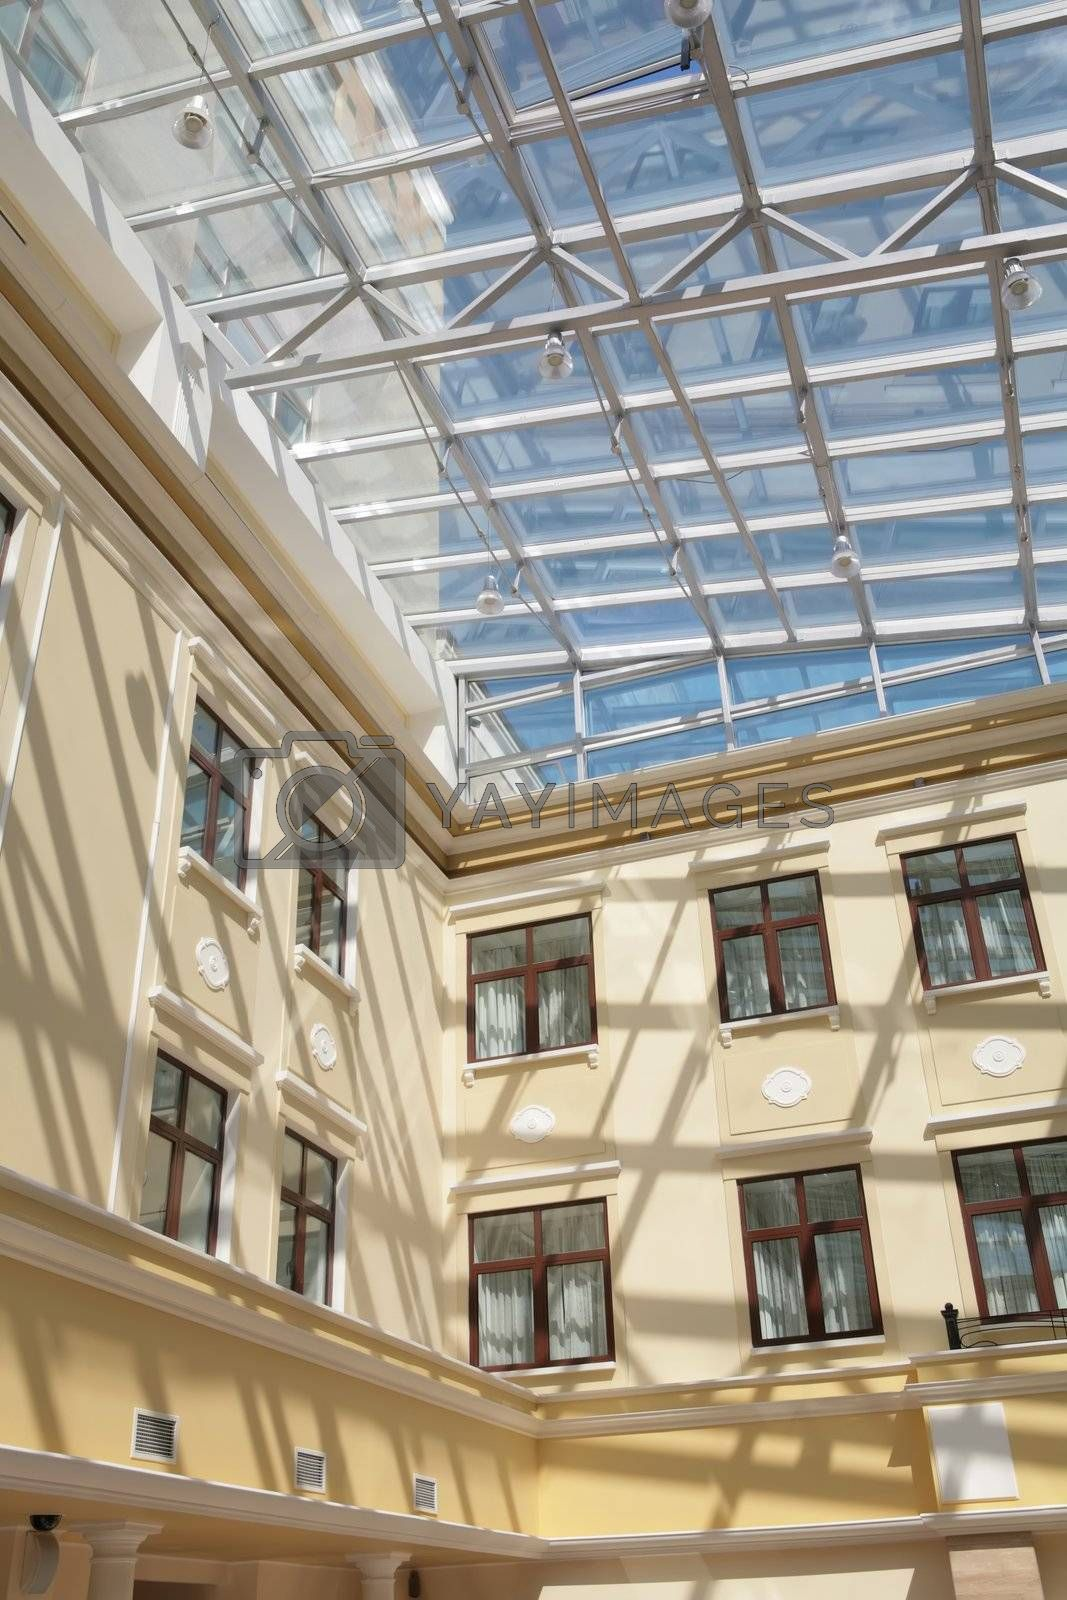 Royalty free image of interior with glass ceiling and windows by Astroid